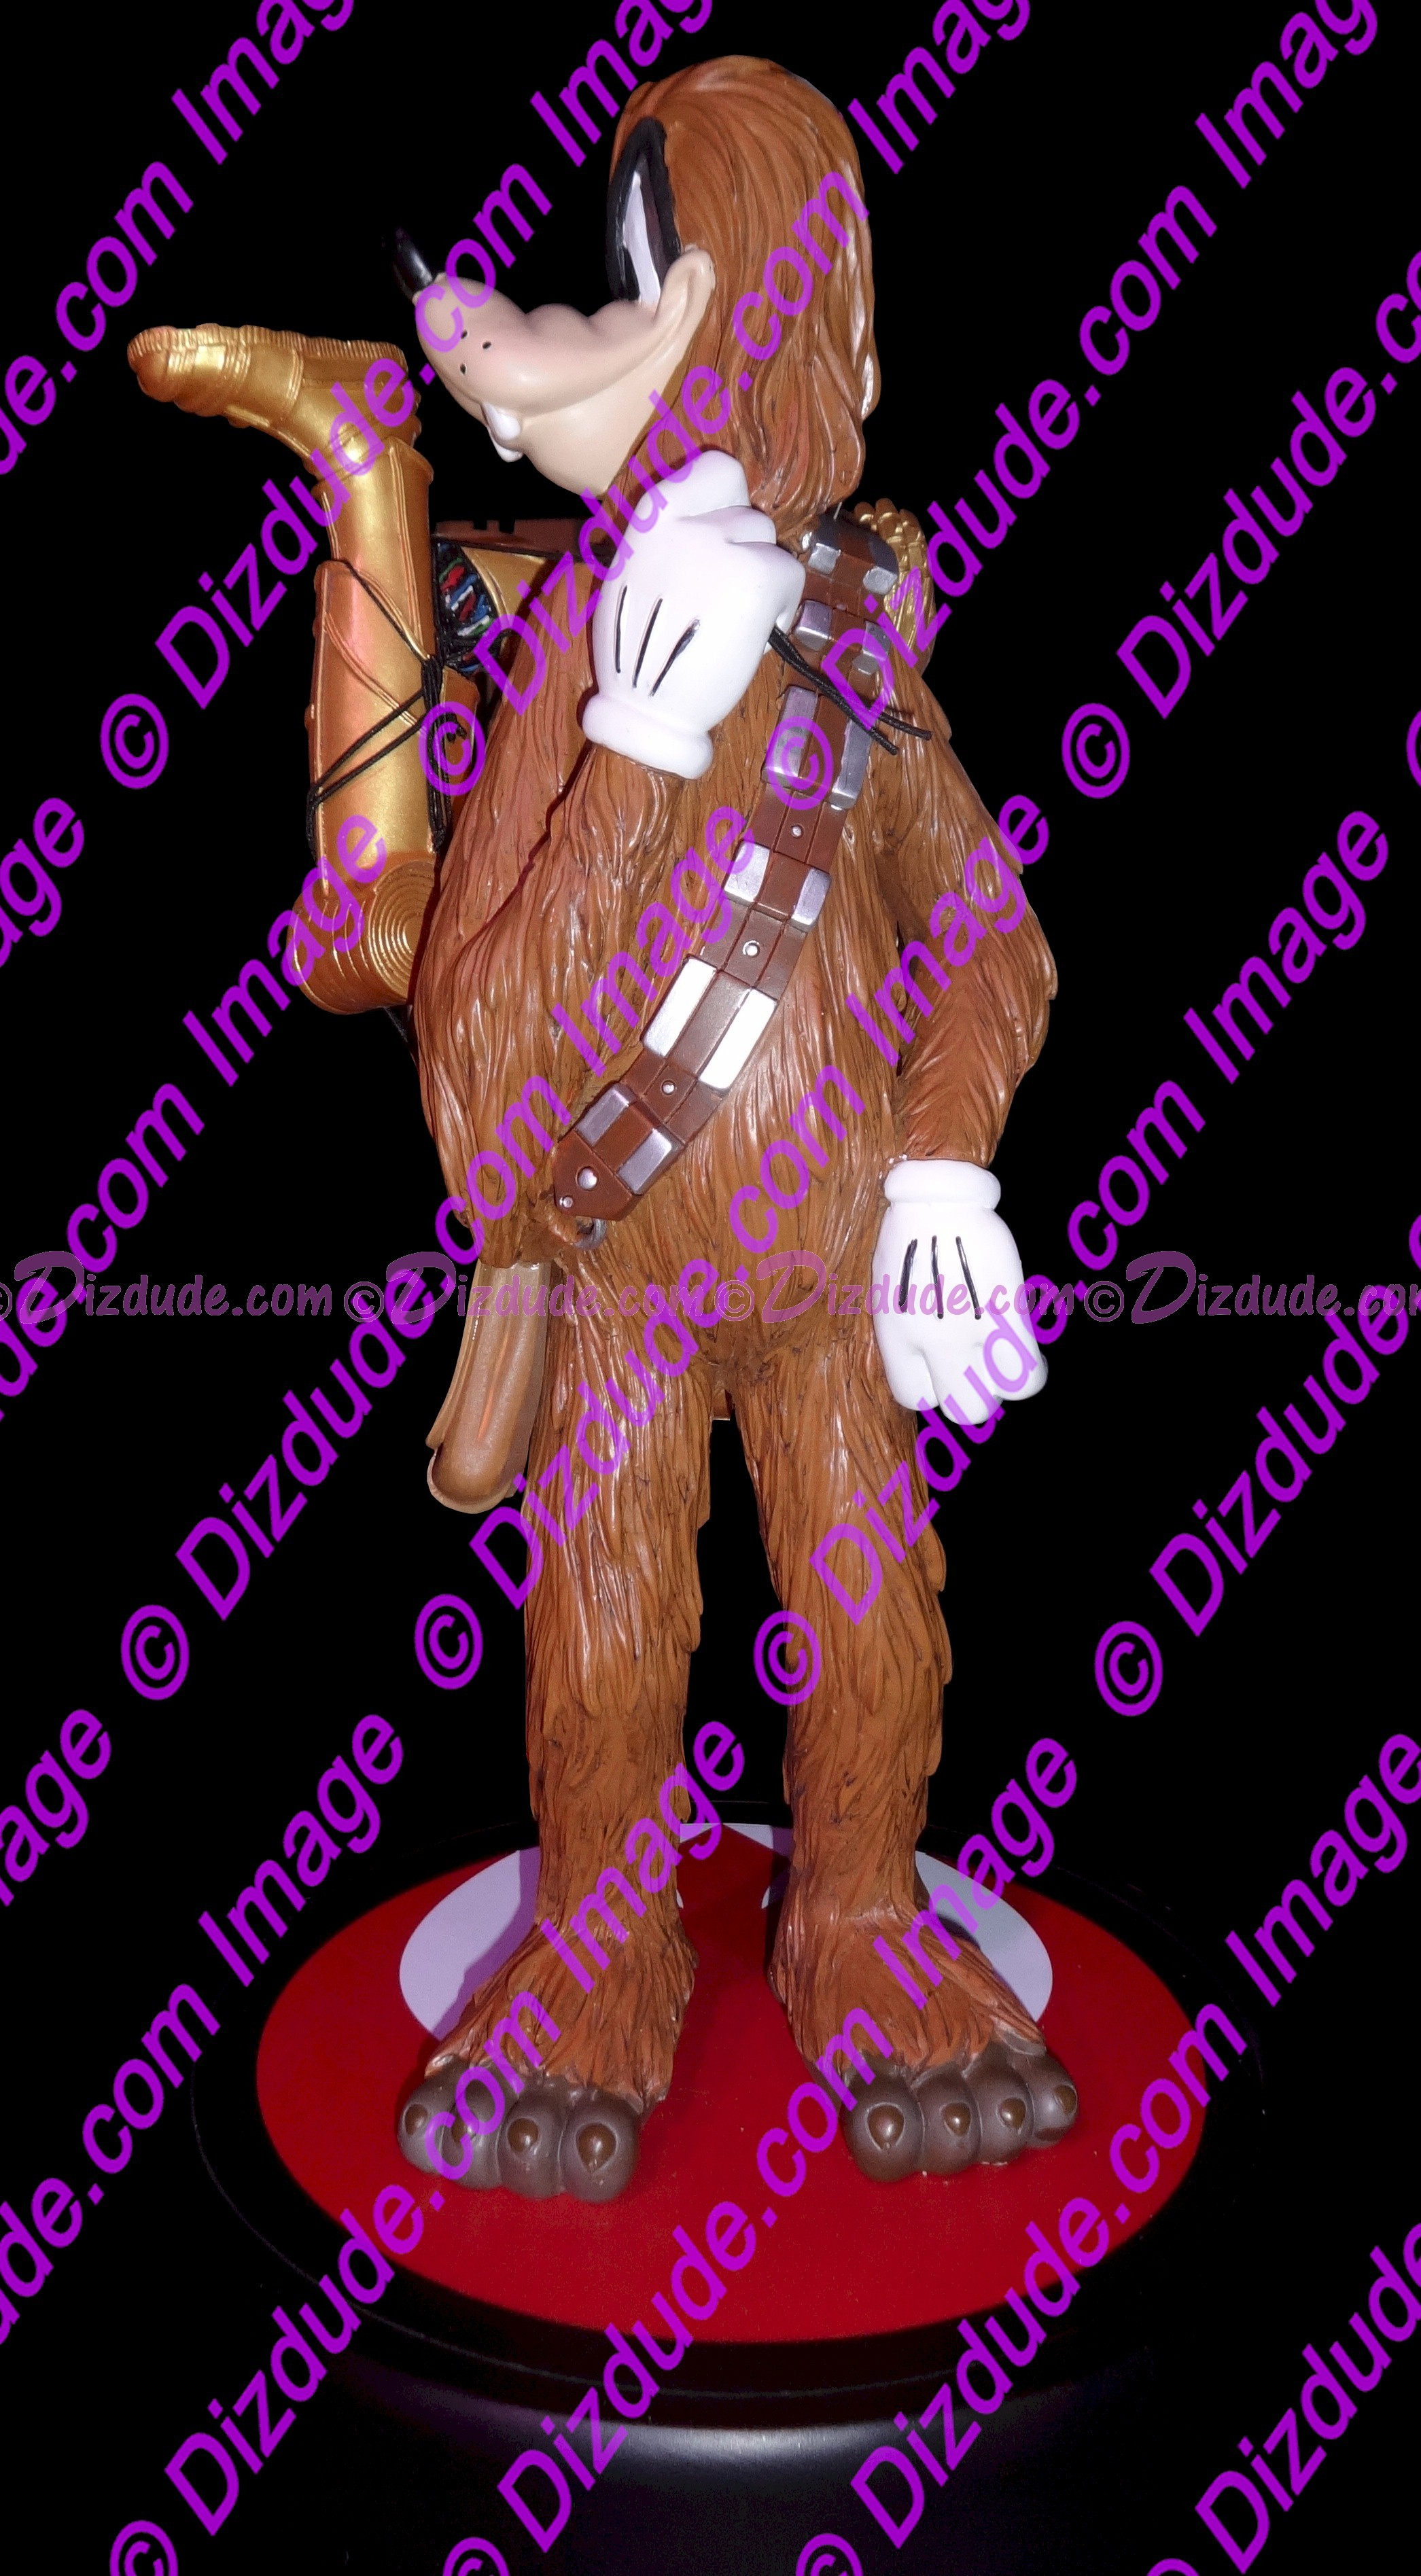 Goofy as Chewbacca Medium Big Fig with pin LE 1977  - Official Disney Star Wars Weekends 2015 Event ©Dizdude.com